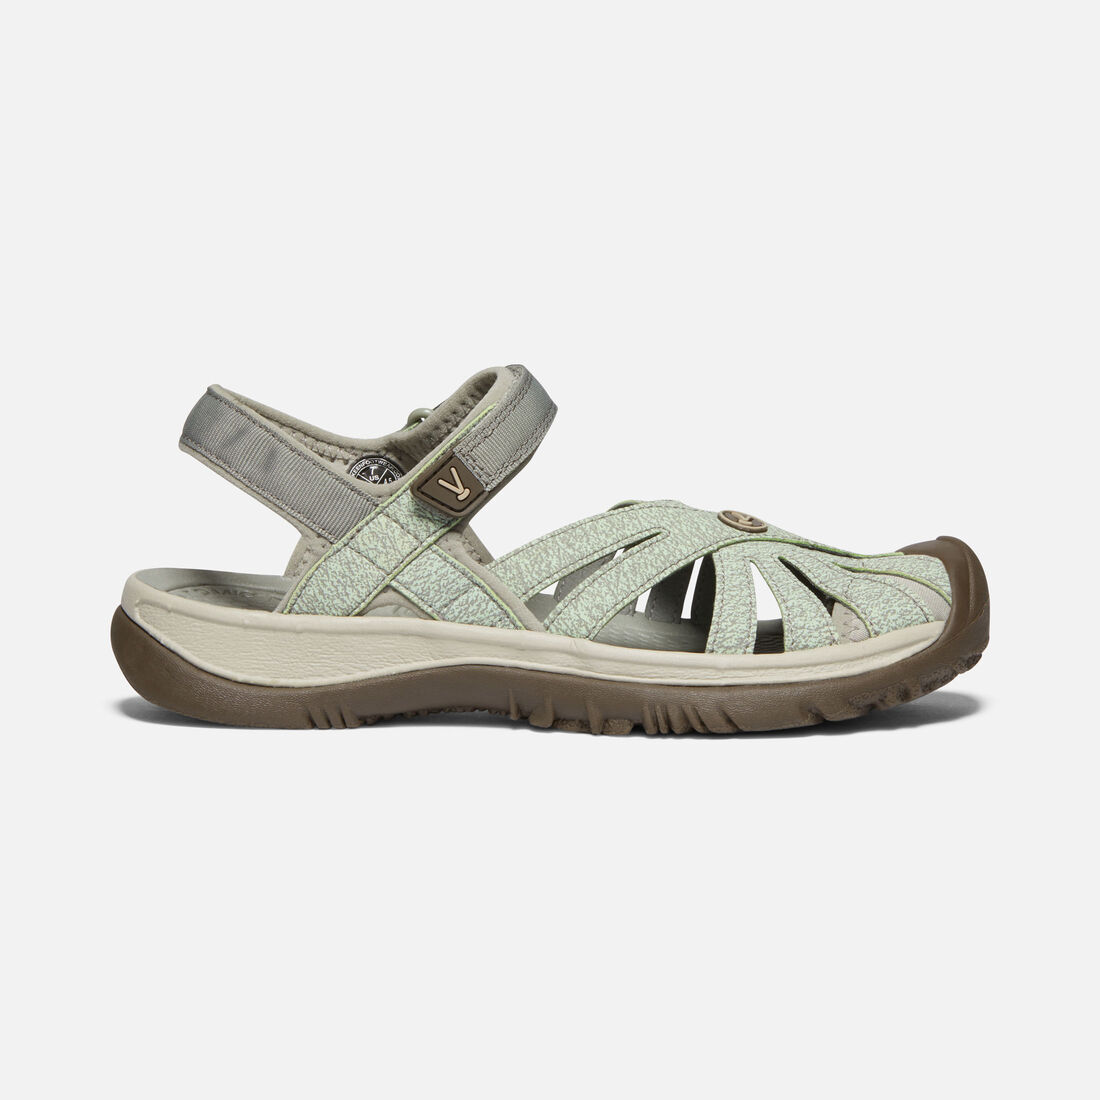 970910fb3a2 Women s Rose Sandal in LILY PAD CELADON - large view.